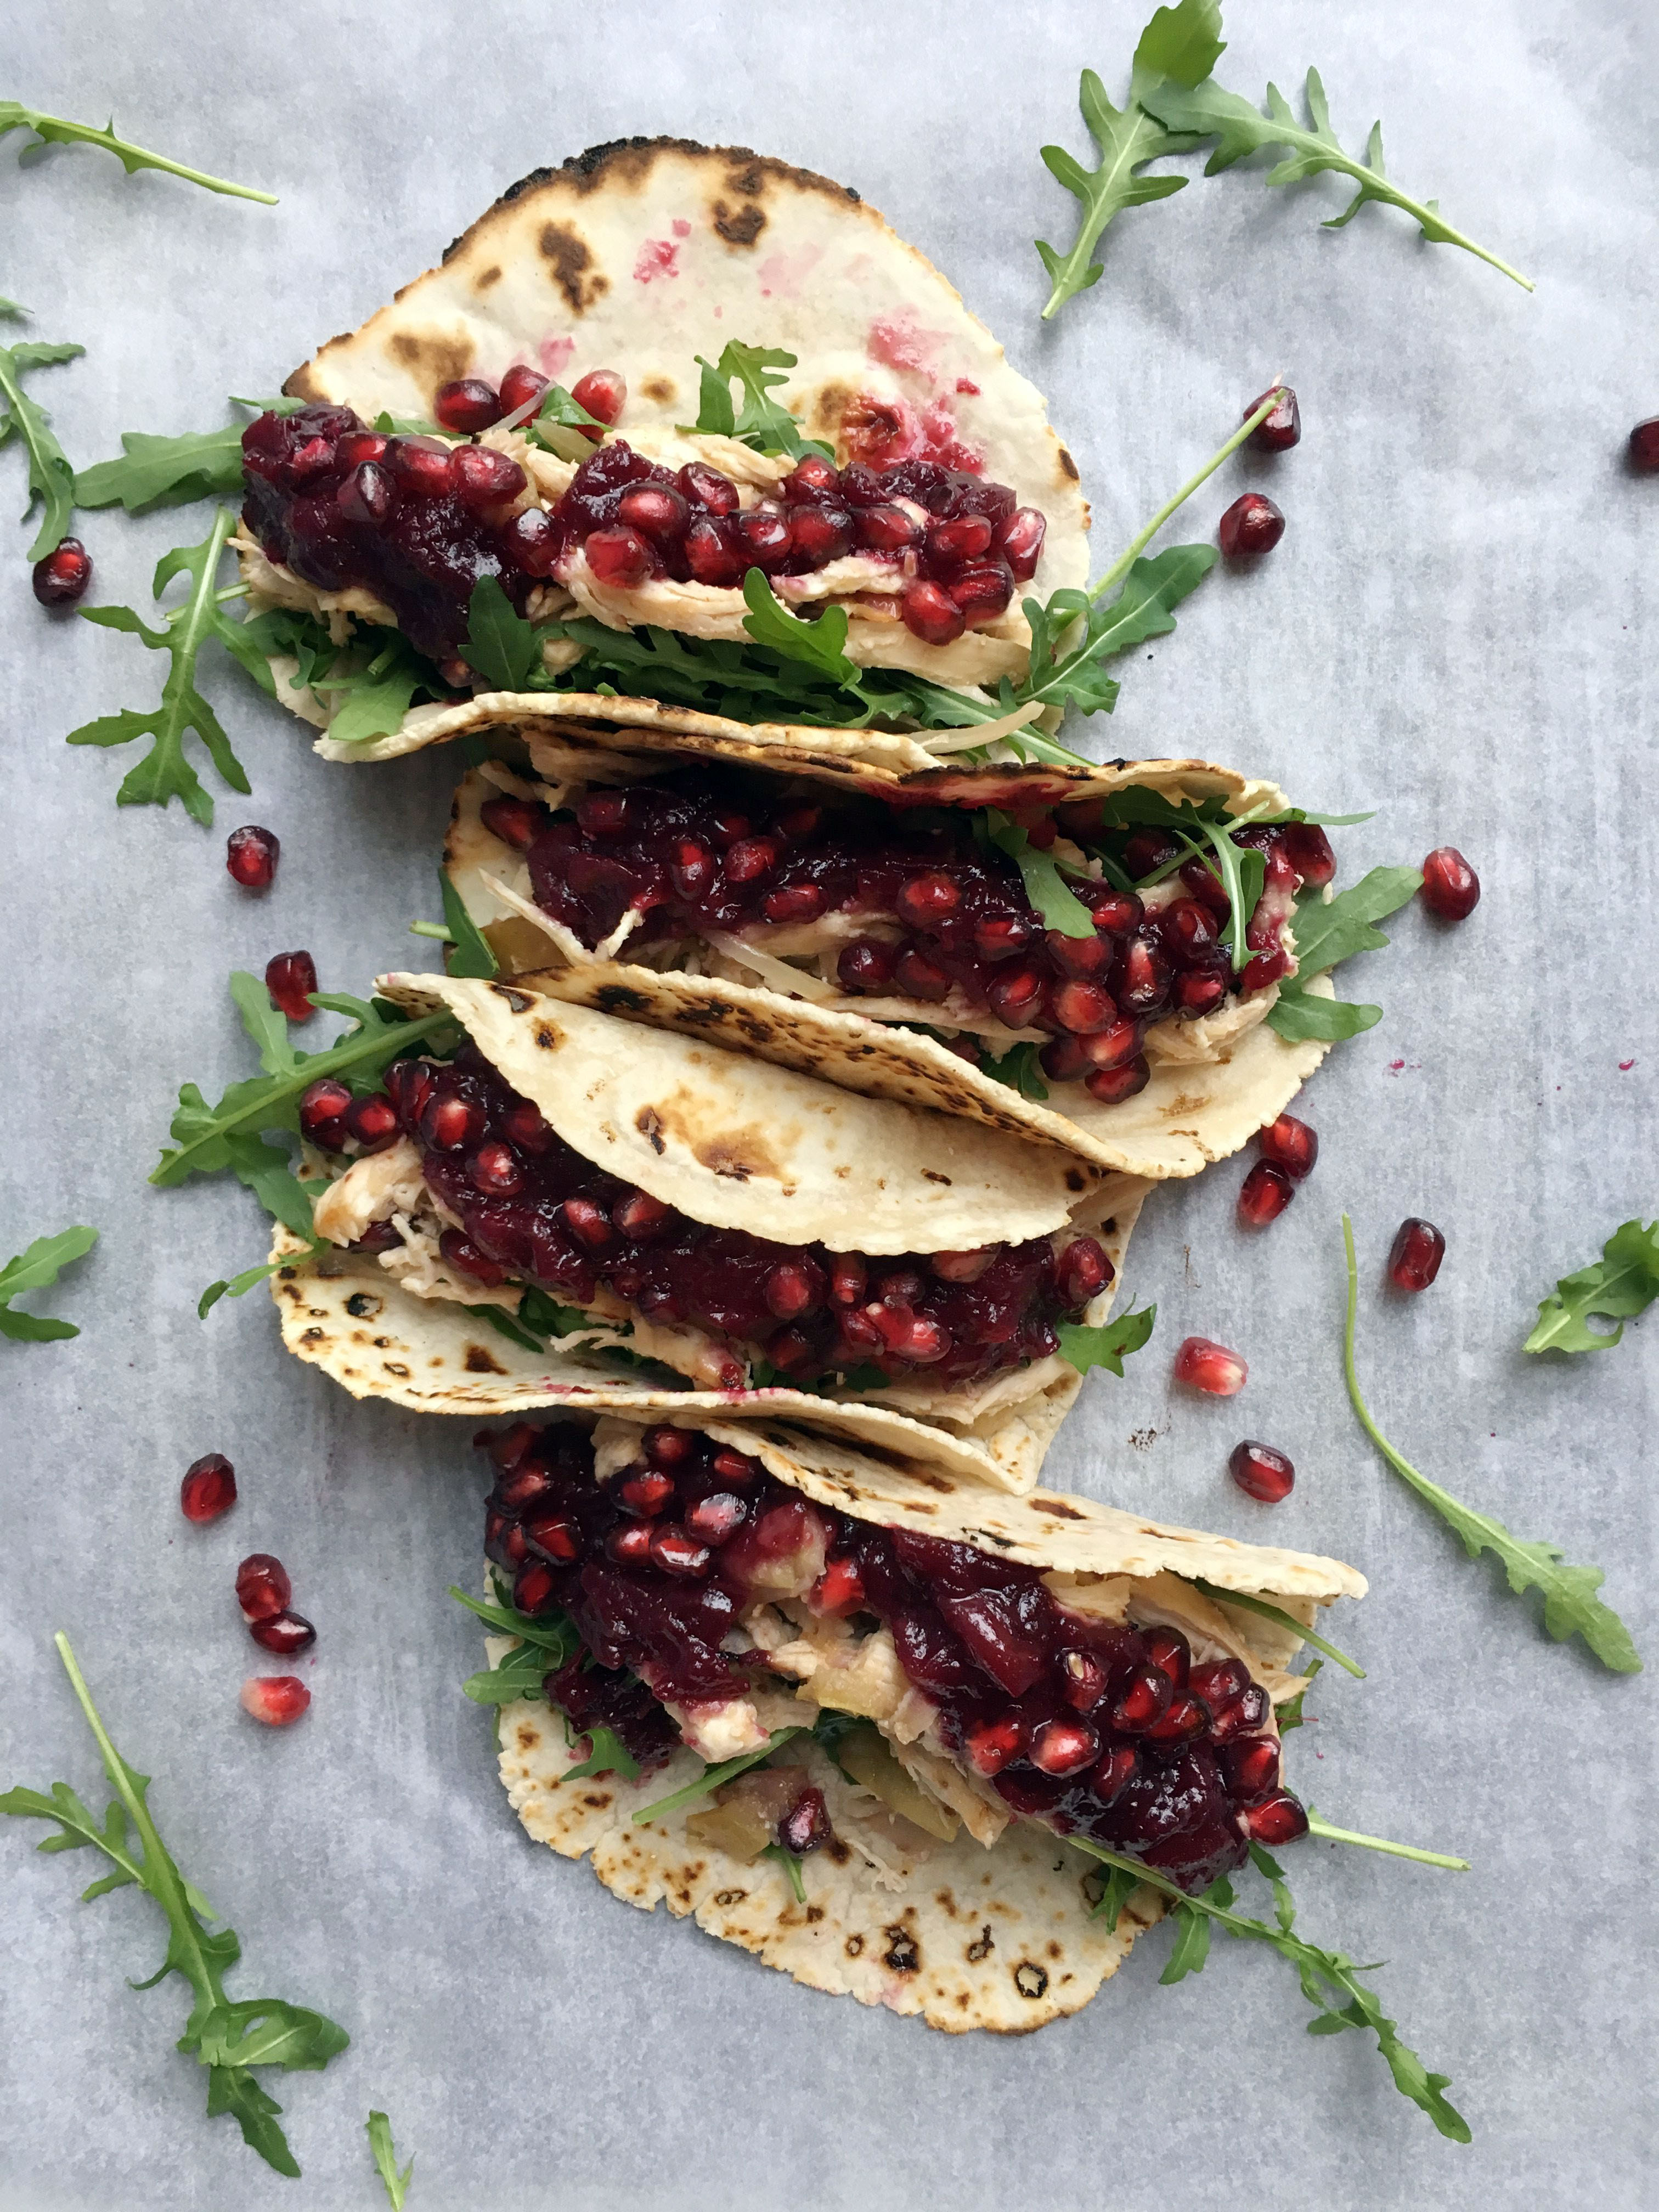 Pulled Turkey and Cranberry Sauce Tacos with Grain Free Tortillas